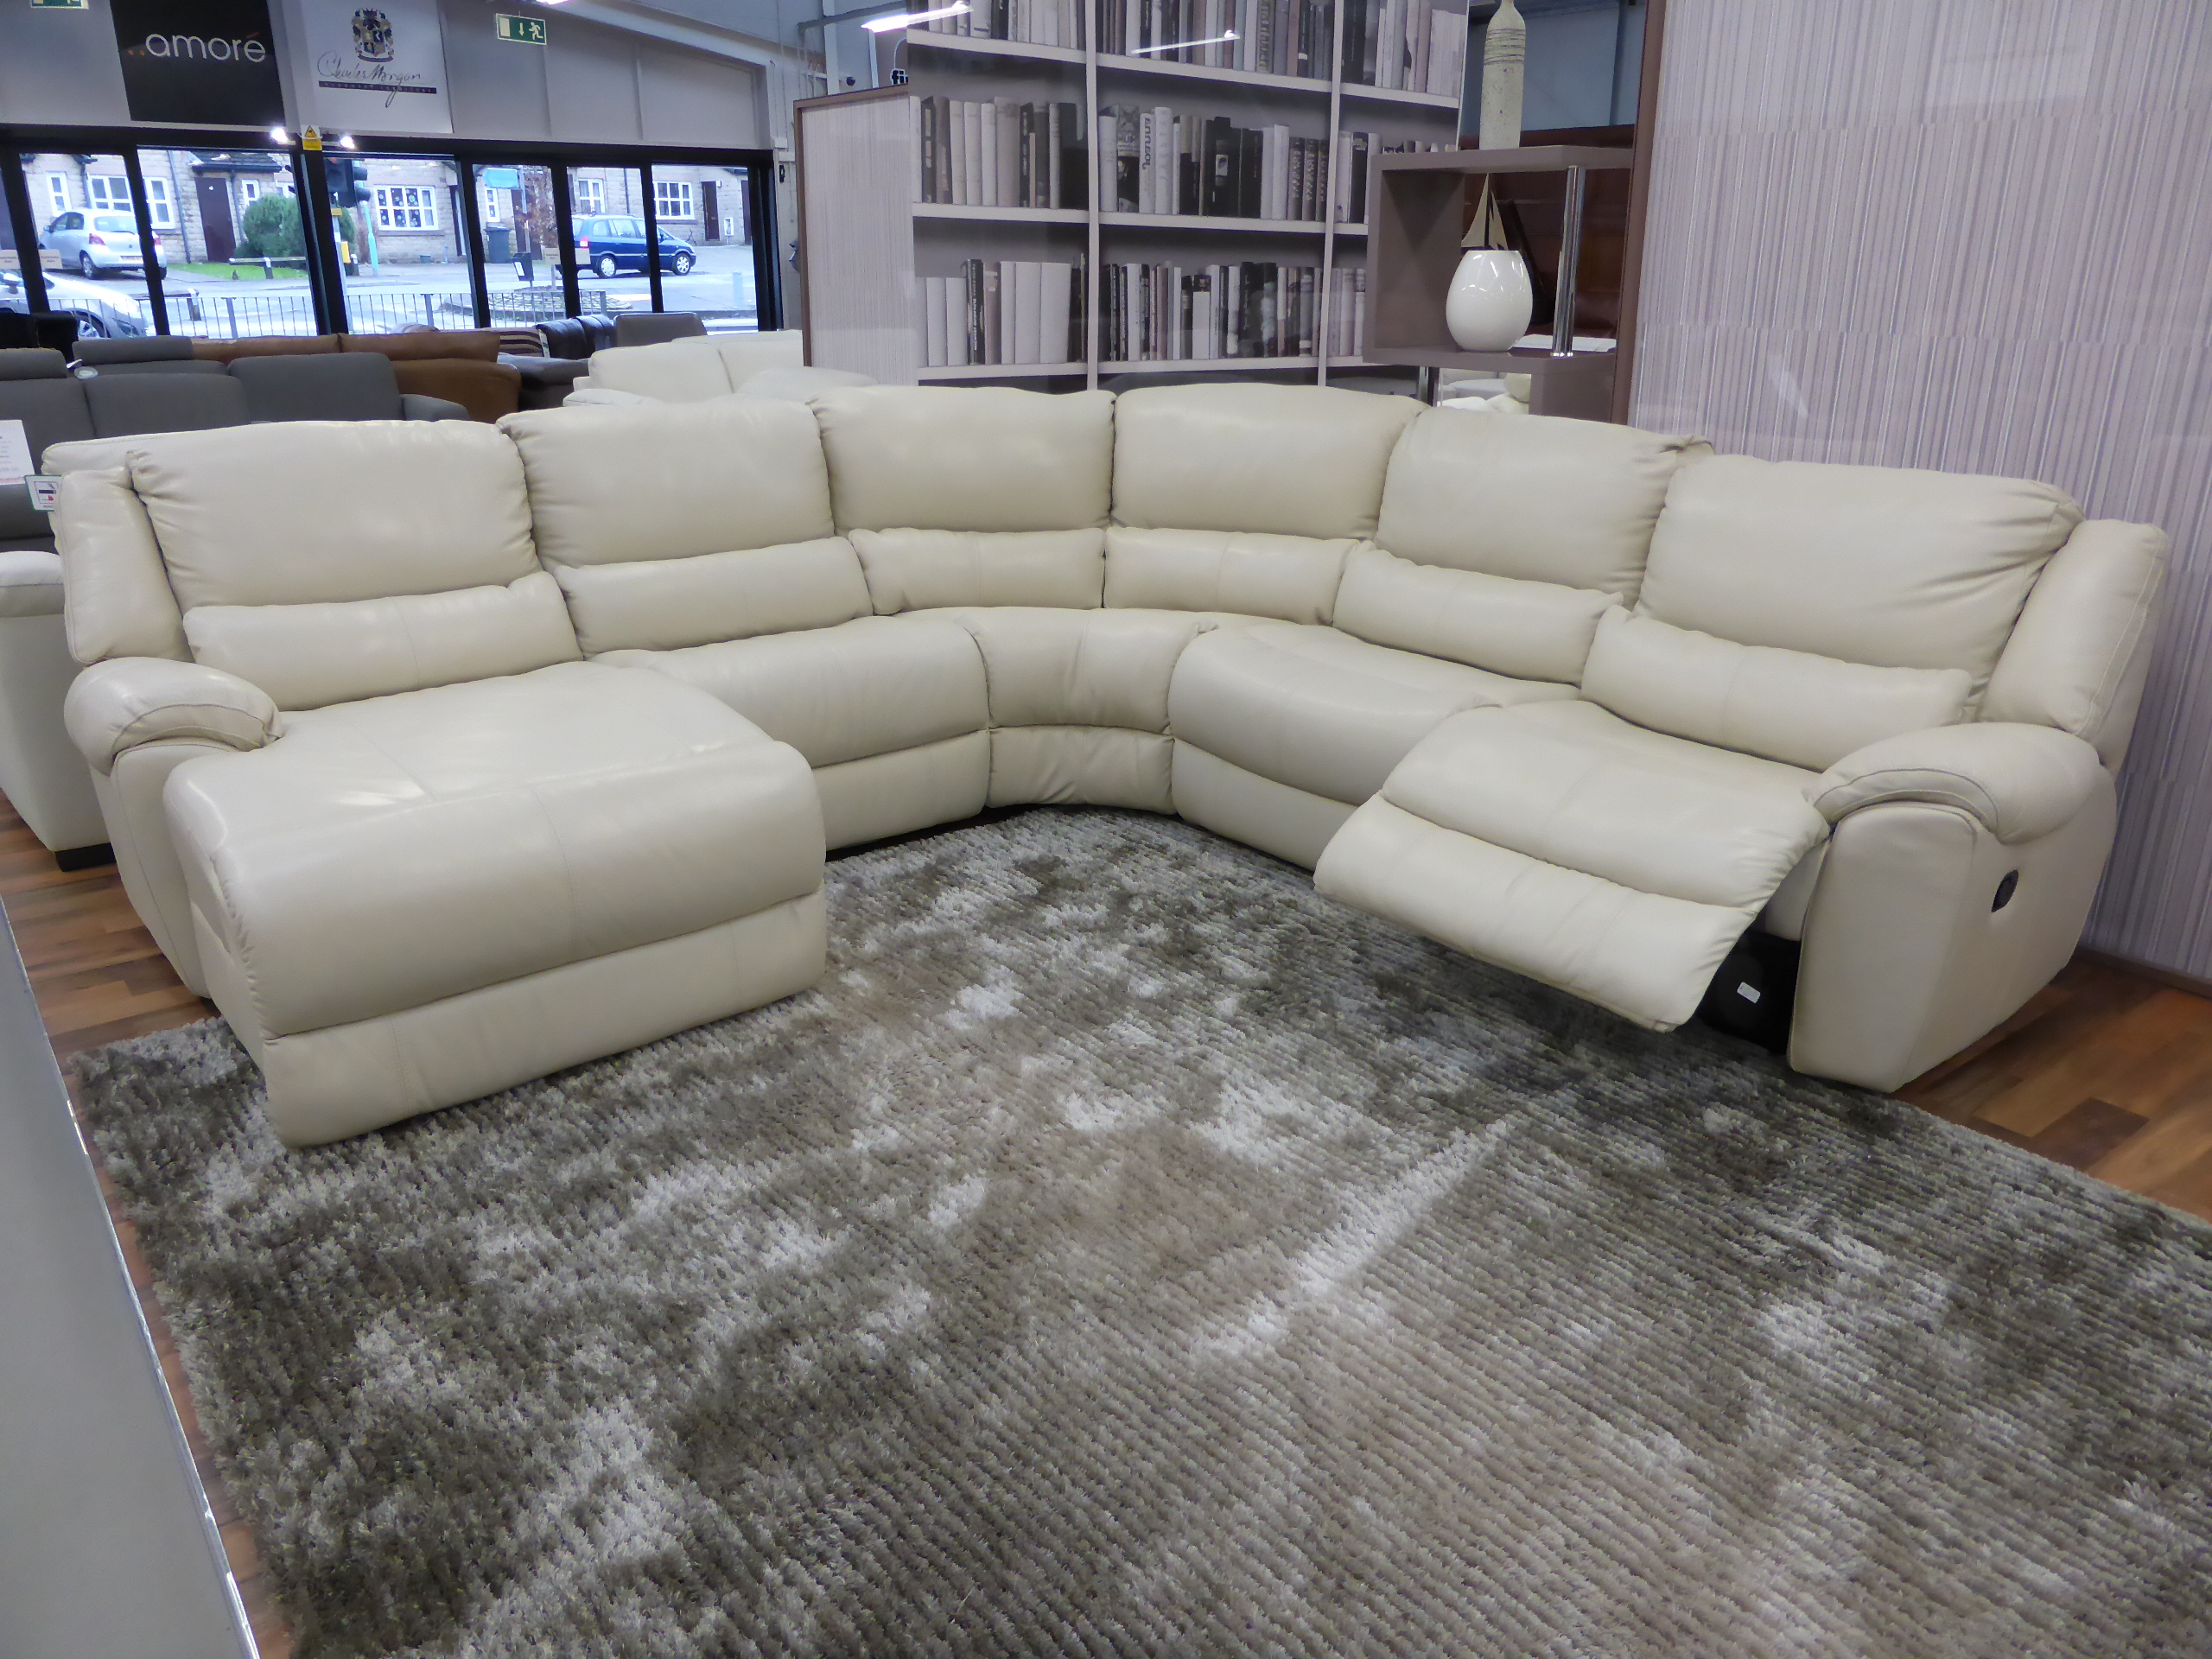 marco cream chaise sofa by factory outlet genuine leather sectional canada mizzoni italia reclining corner furnimax